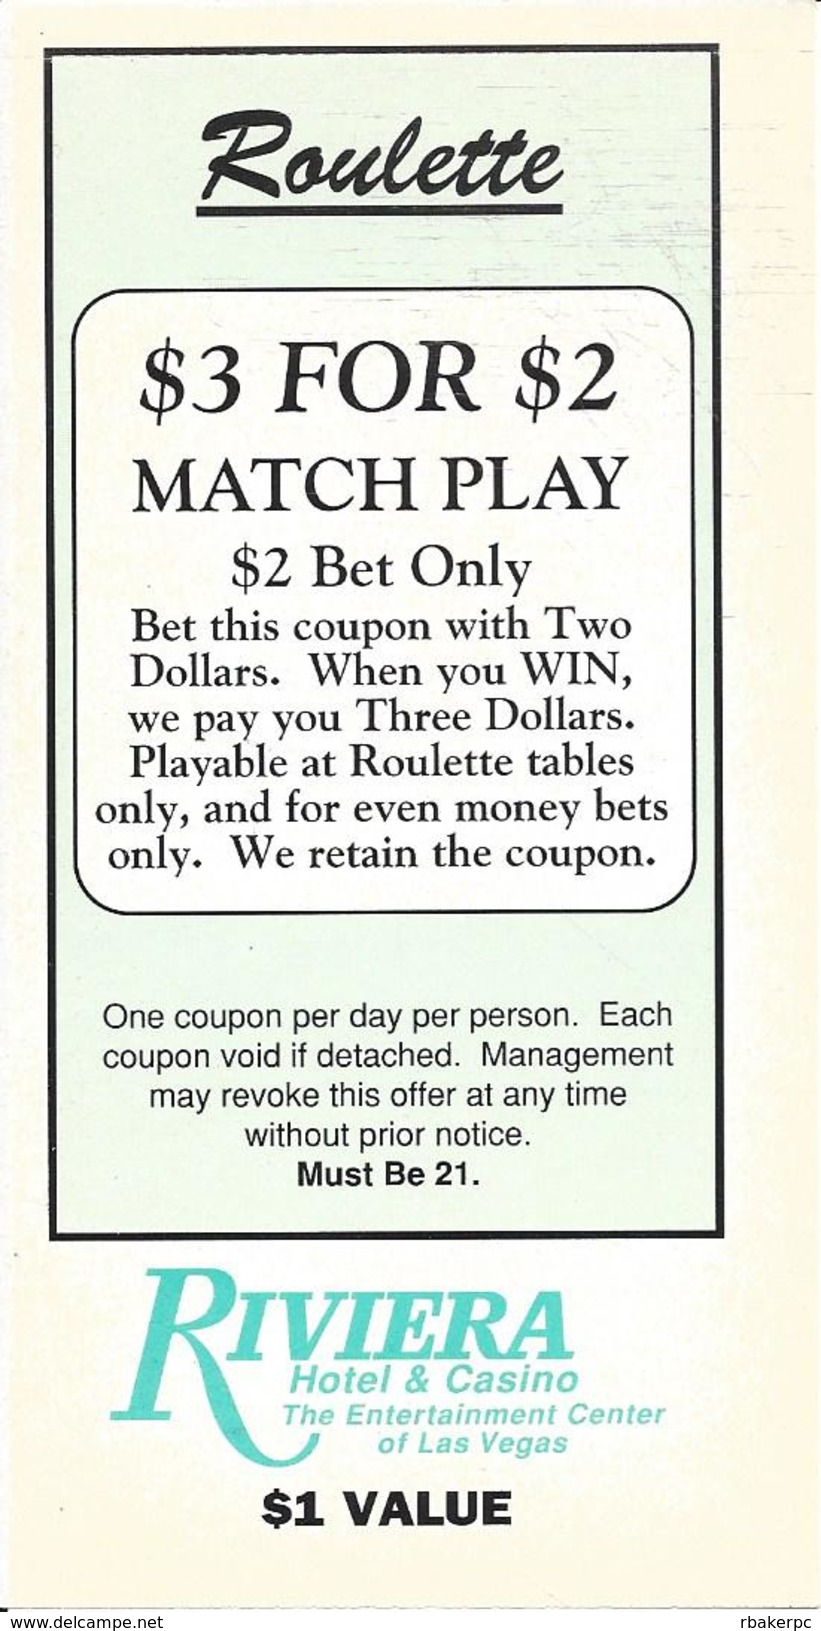 Riviera Casino Las Vegas, NV - Paper Roulette $3 For $2 Match Play Coupon - Advertising